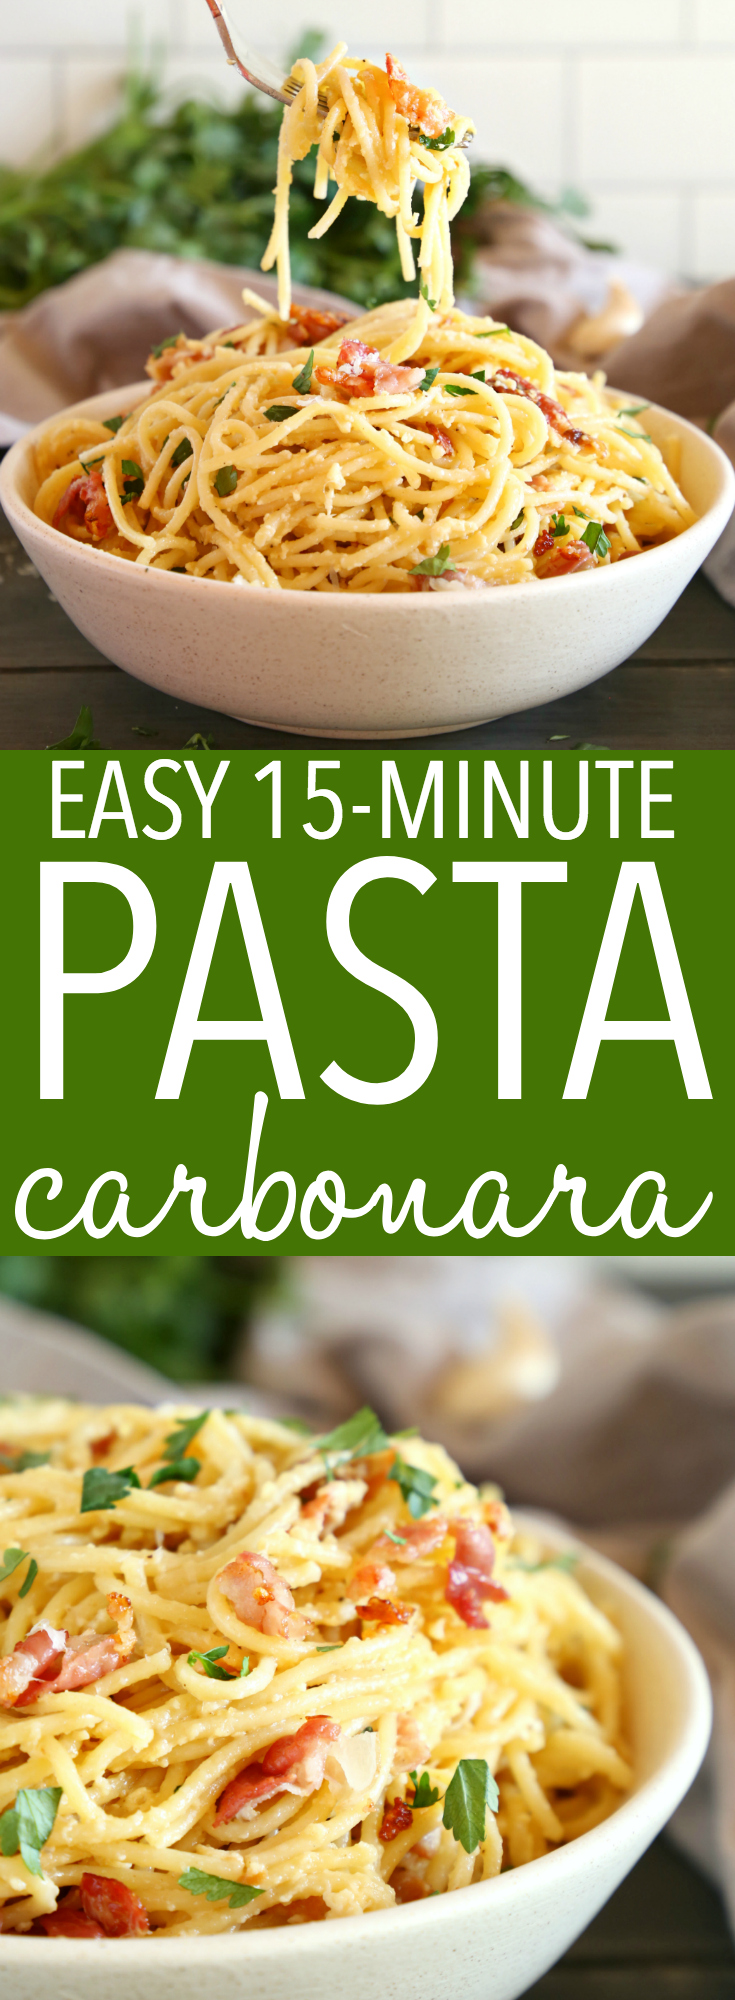 This Easy 15-Minute Pasta Carbonara is a simple weeknight meal made in minutes with basic ingredients you probably already have in your kitchen! Recipe from thebusybaker.ca! #pasta #carbonara #15minutes #easy #meal #dinner #supper #homemade #mealidea #mealplanning #mealprep #healthy #simple #easyrecipe #recipe #carbs #comfortfood #weeknightmeal #bacon #eggs via @busybakerblog